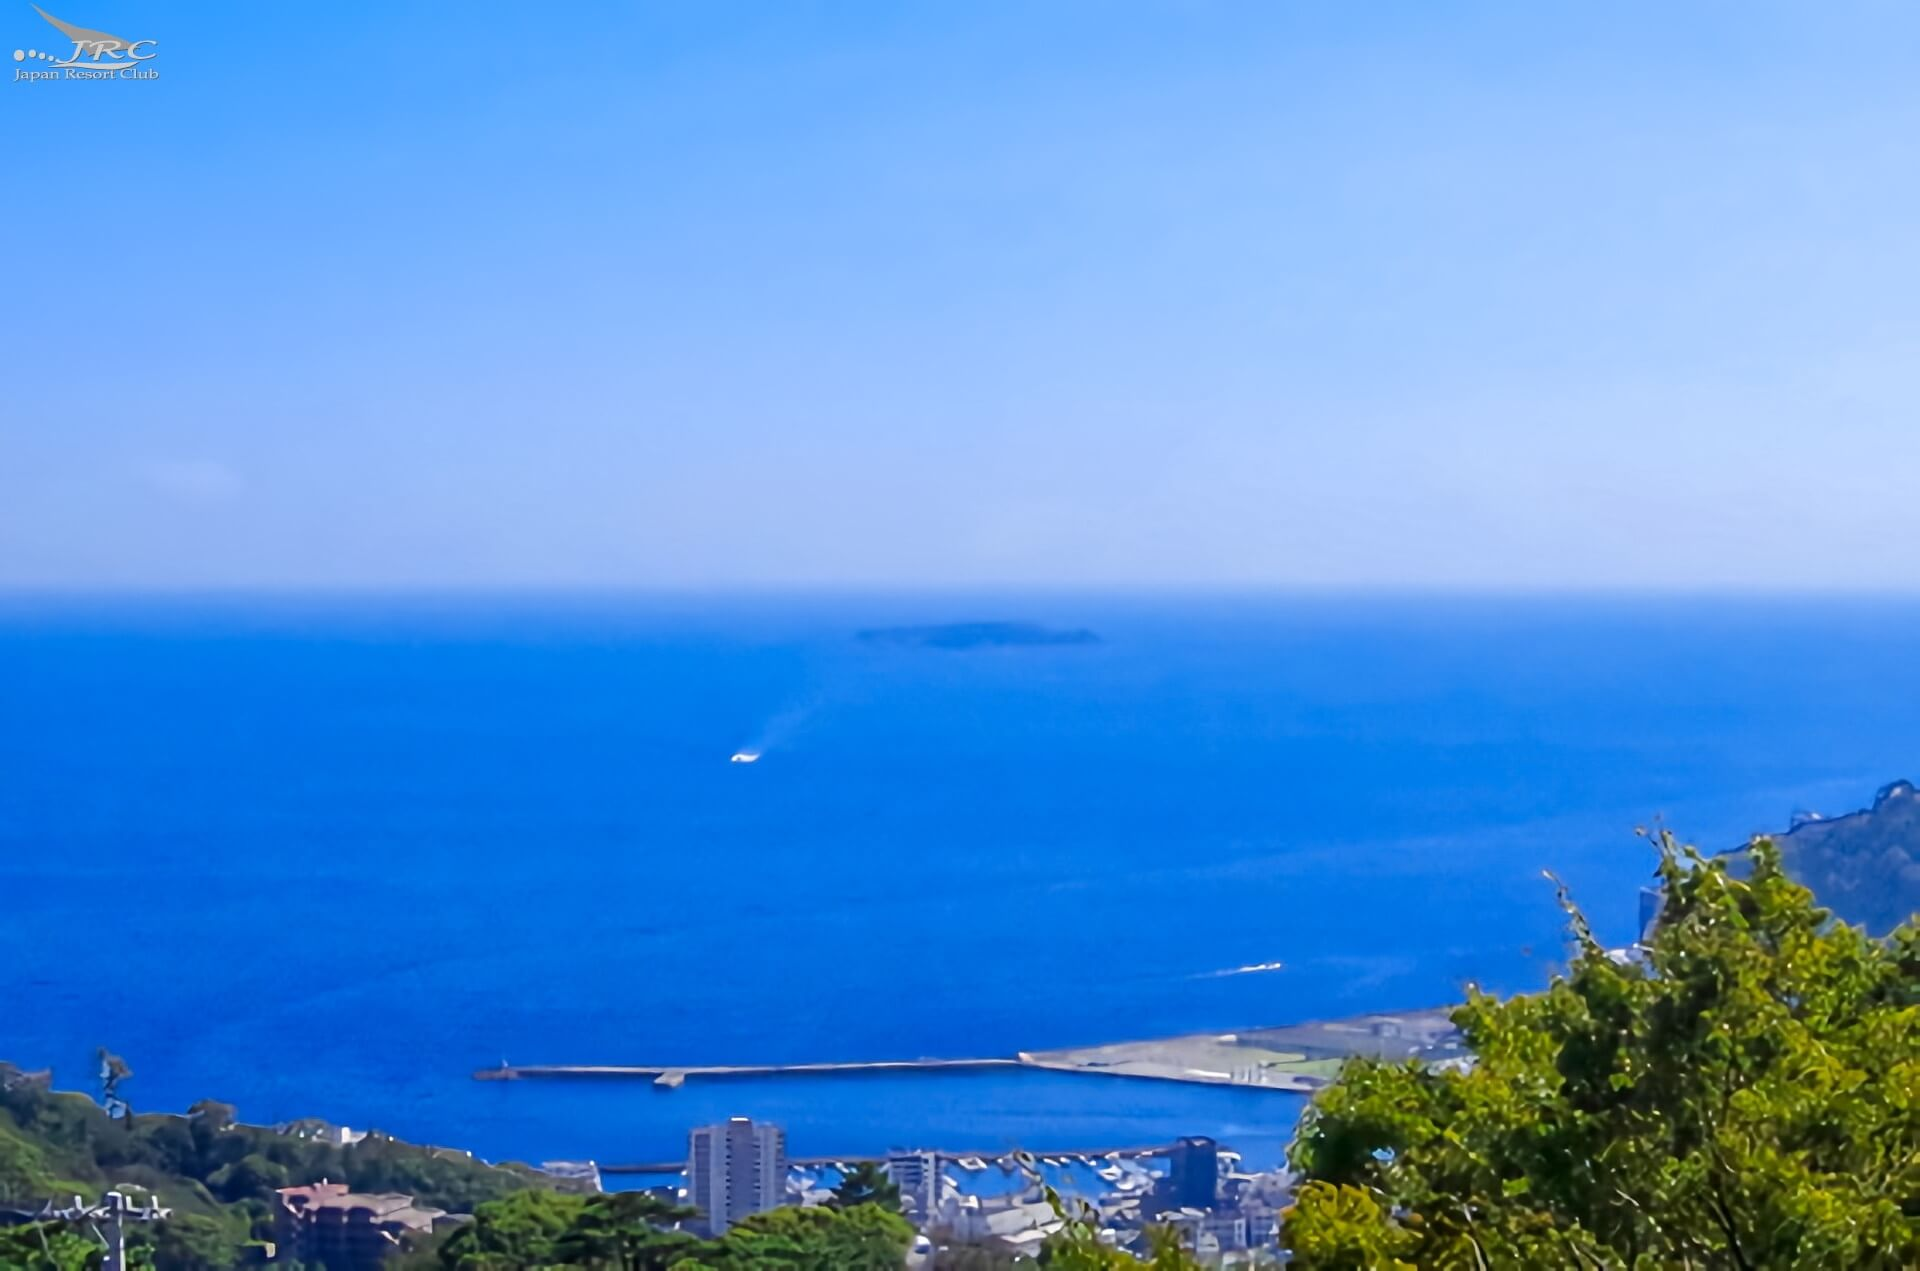 52.88 million yen, West Atami Town, 3 storey house with office space, nice villa place